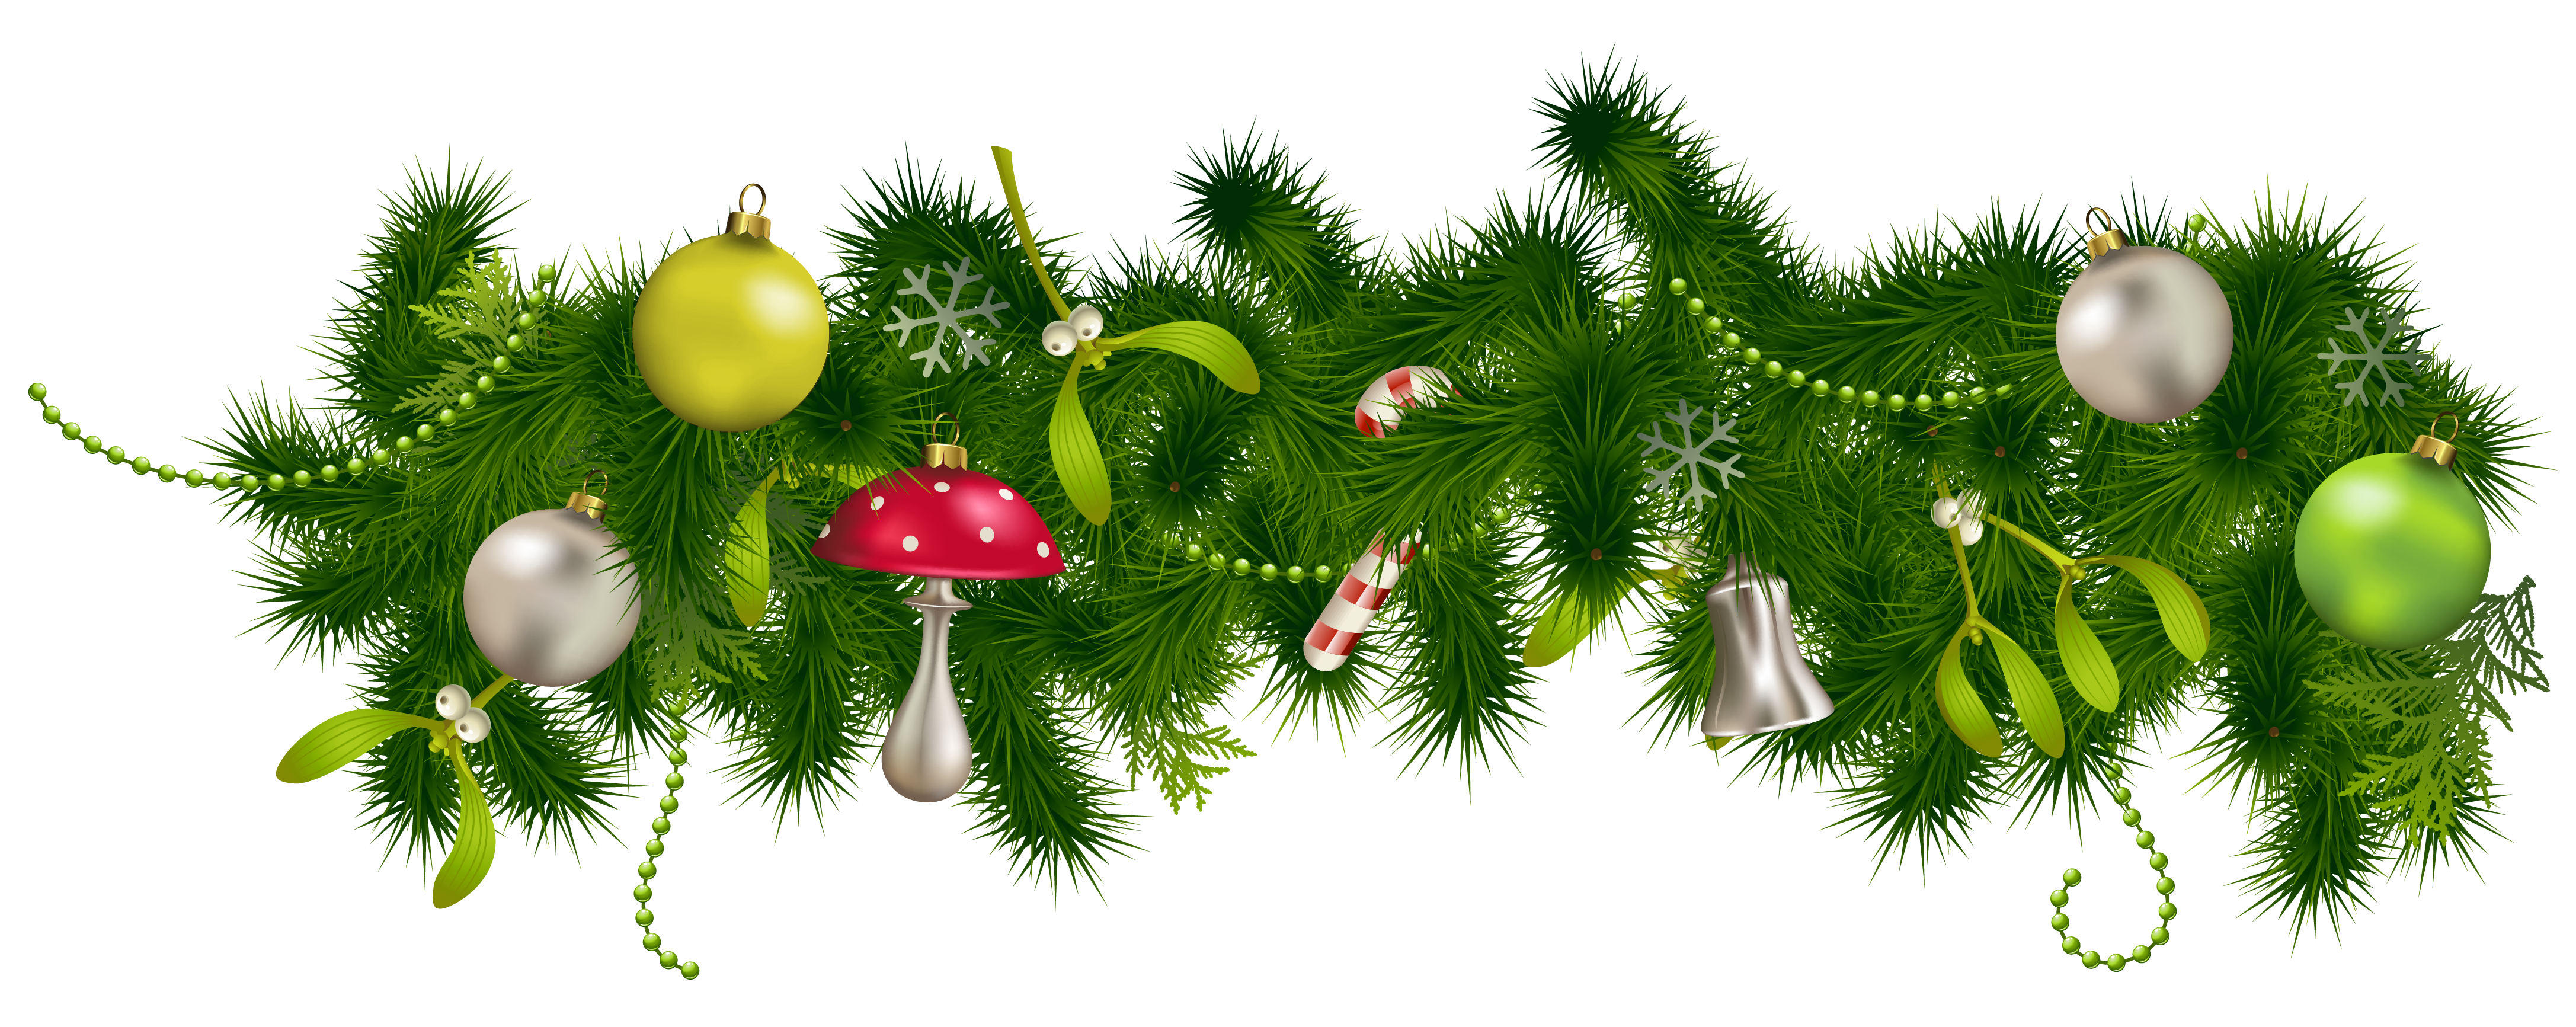 Holiday Garland Clipart Gallery Christmas Clipart Holiday Garlands Christmas Border